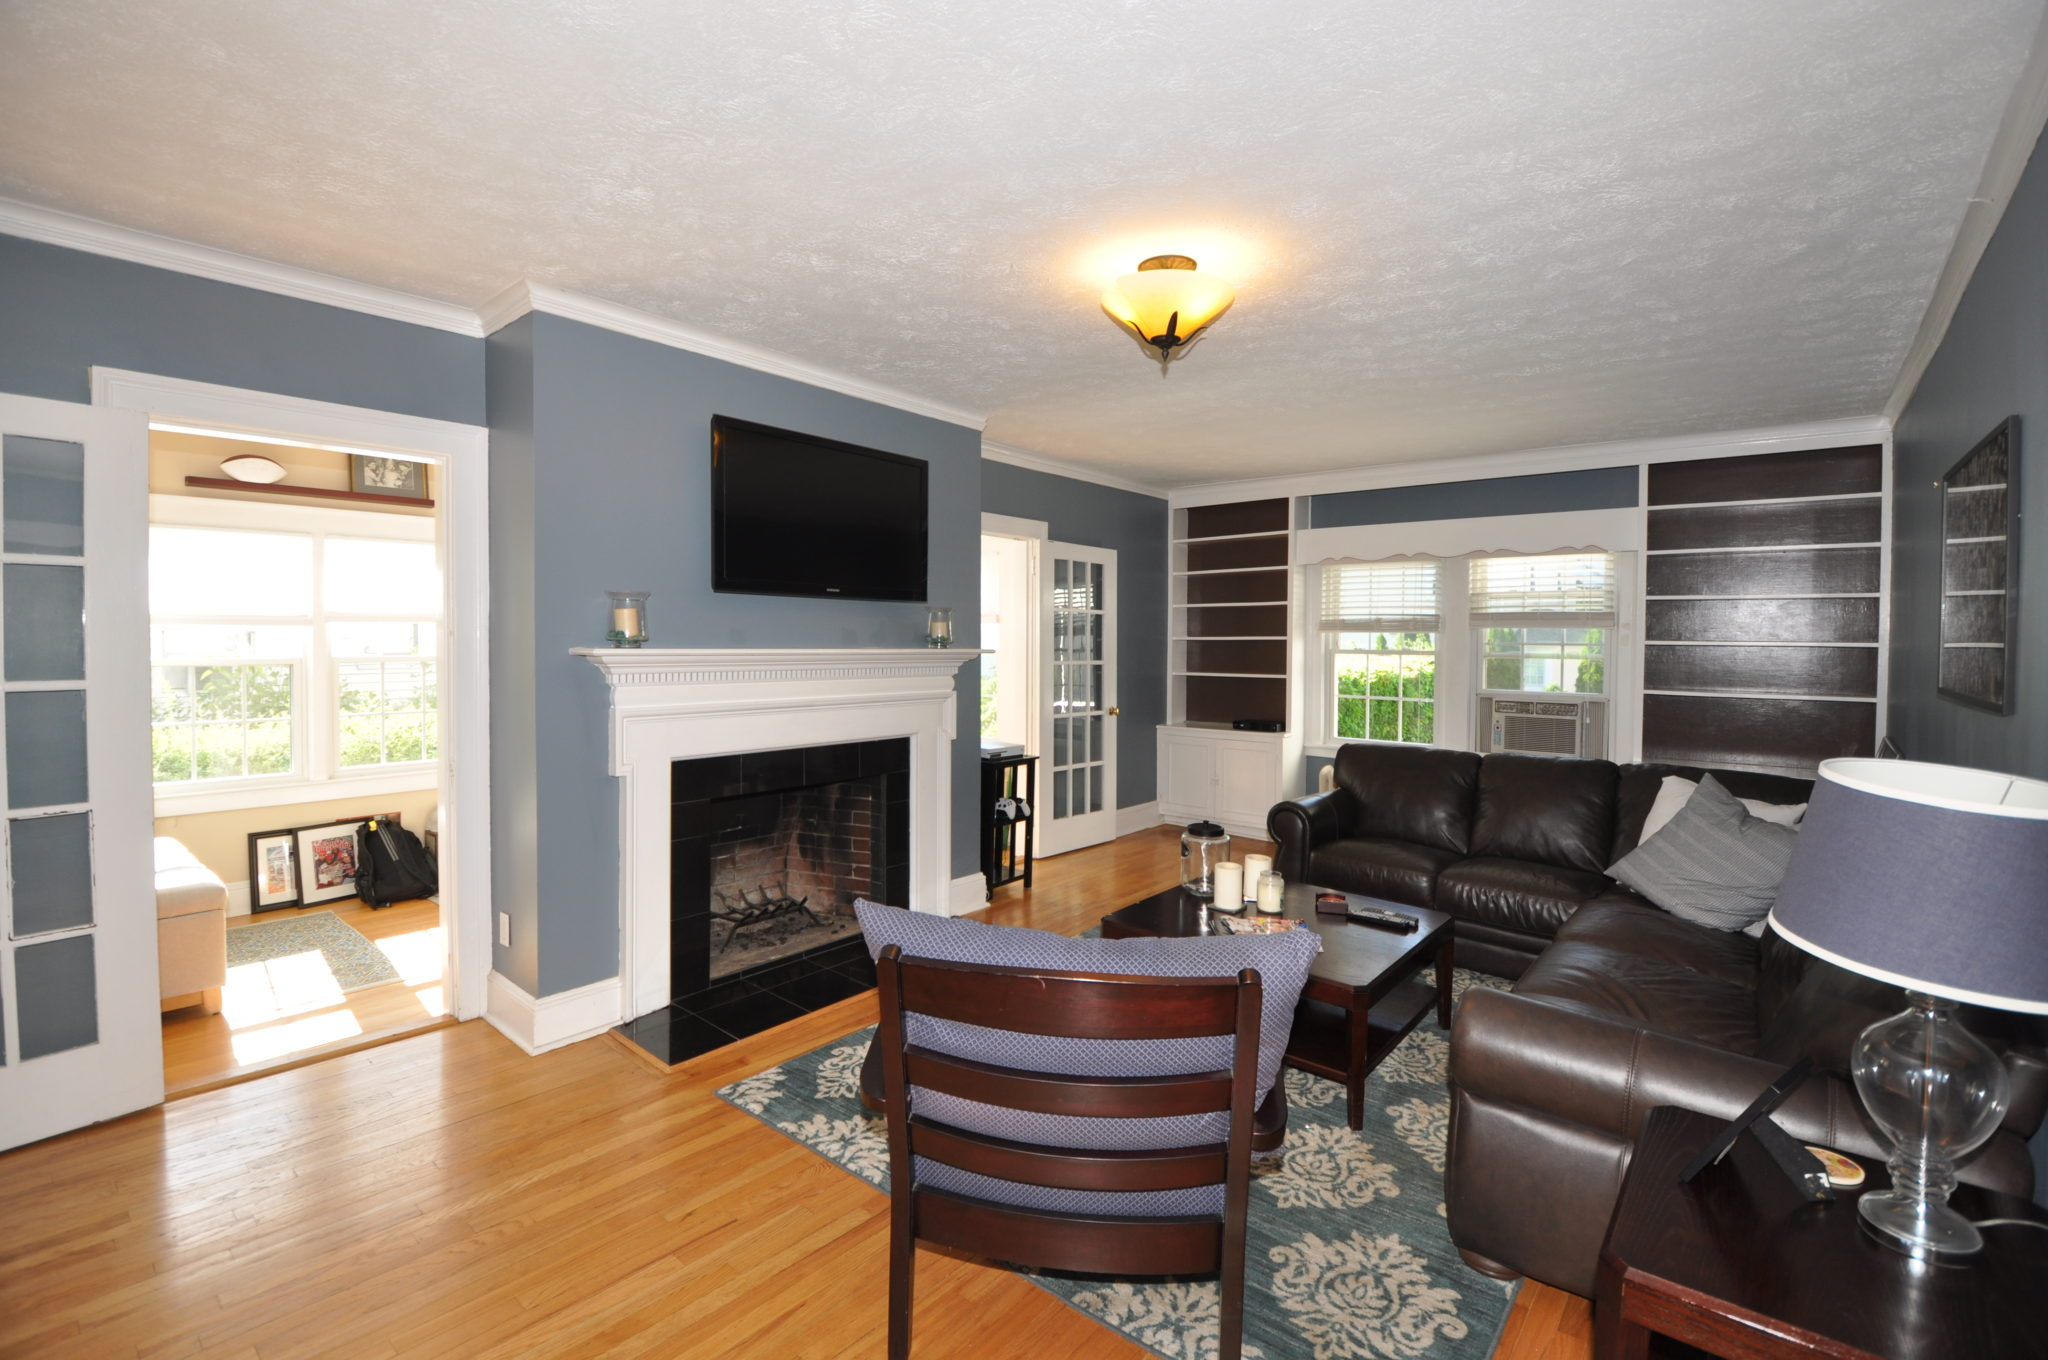 Spacious living room at 328 Fern St., West Hartford, Ct. Double French Doors to sunroom/office. Beautiful fireplace, gleaming hardwood floors, builtin bookcases.